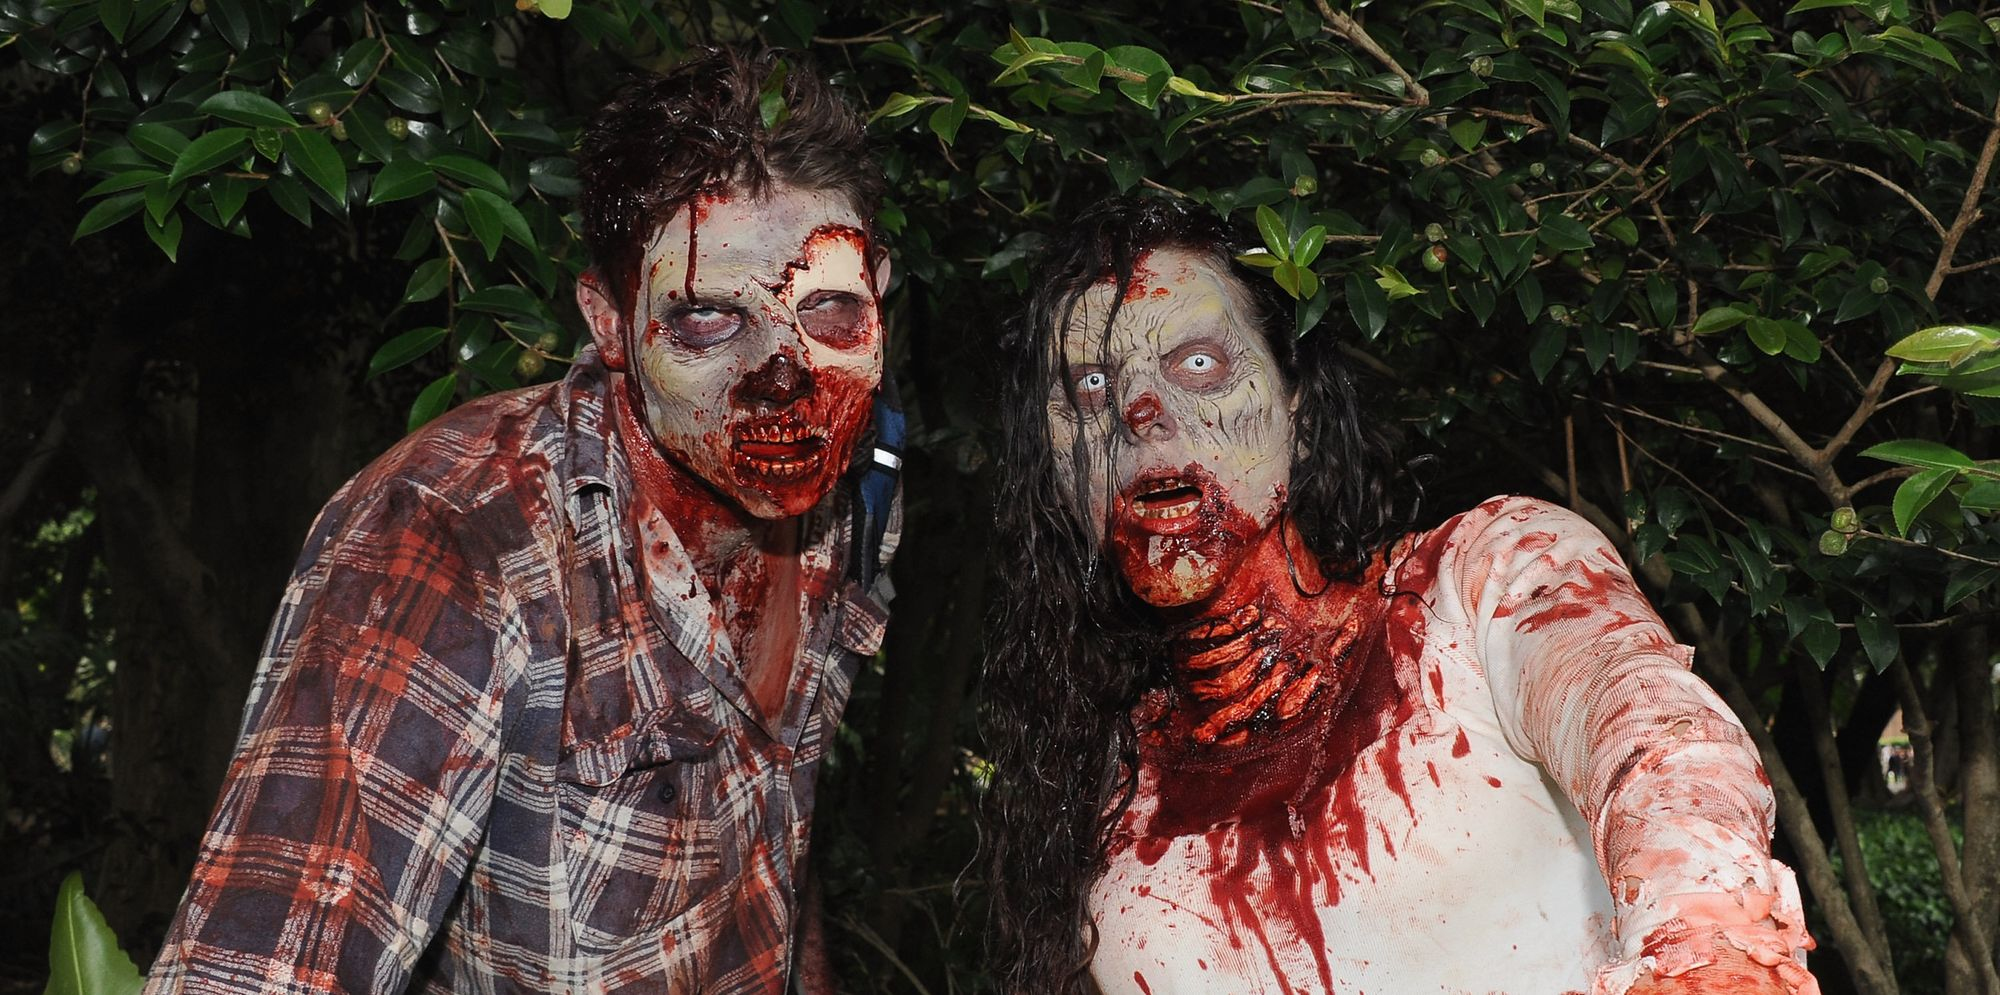 walking dead syndrome It's called the cotard syndrome or the walking dead disorder named after a french doctor jules cotard, the cotard syndrome is a neurological condition in which severe degeneration of neural synapses occurs and messes with the facial recognition and emotion centres of the brain.